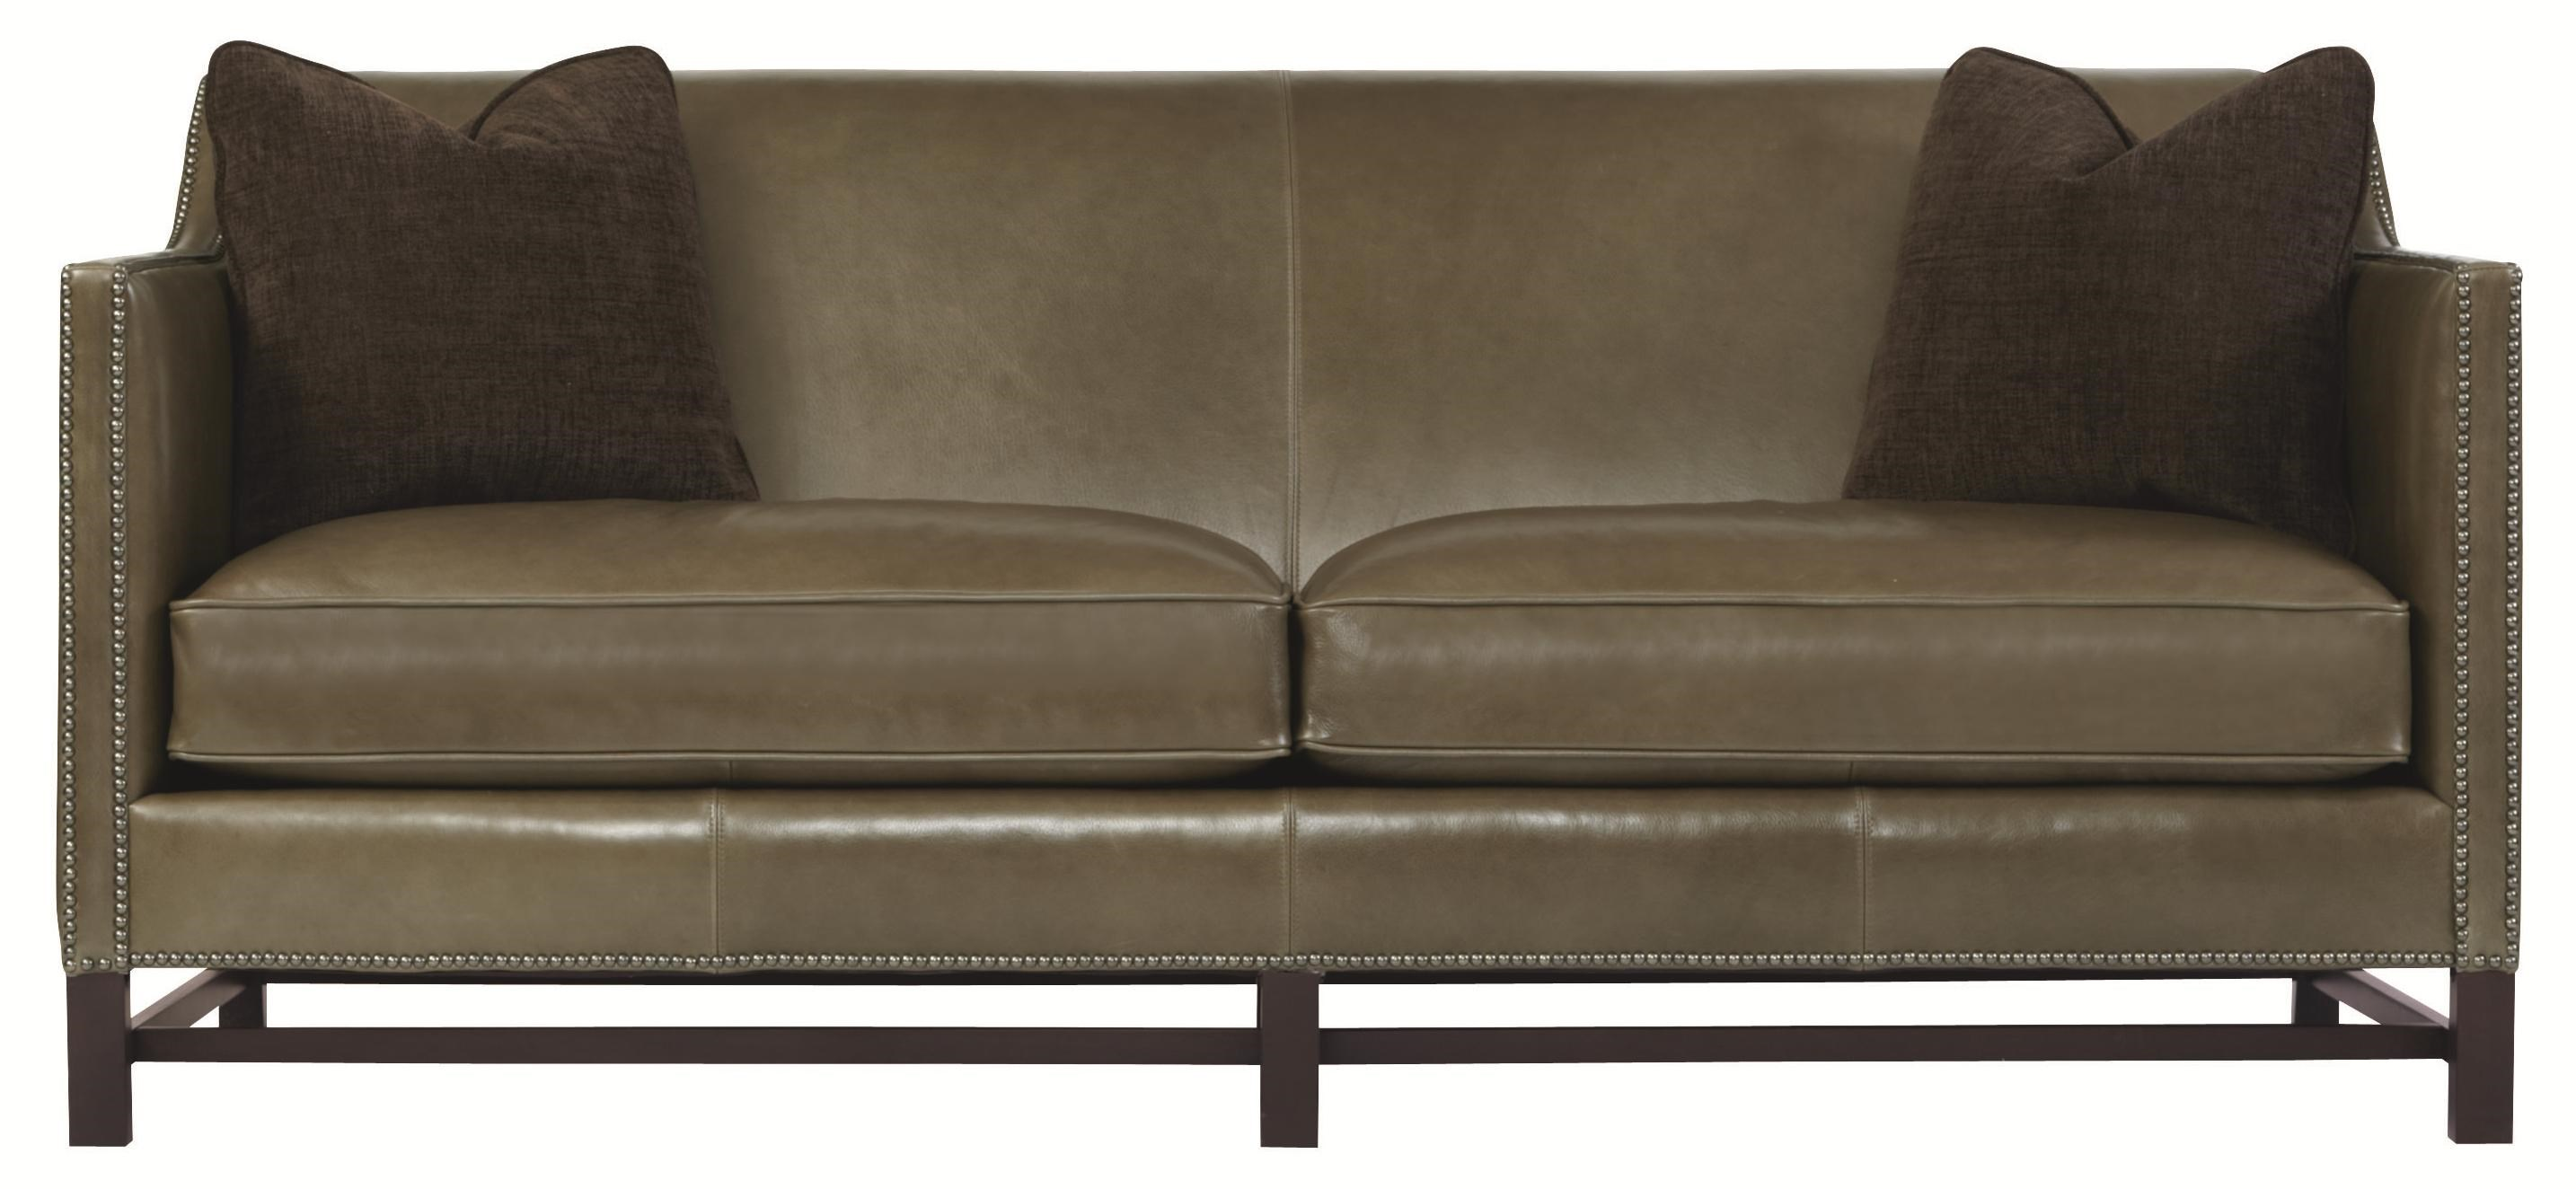 Bernhardt Interiors   Sofas Contemporary Styled Chatham Sofa With Exposed  Wood Accents